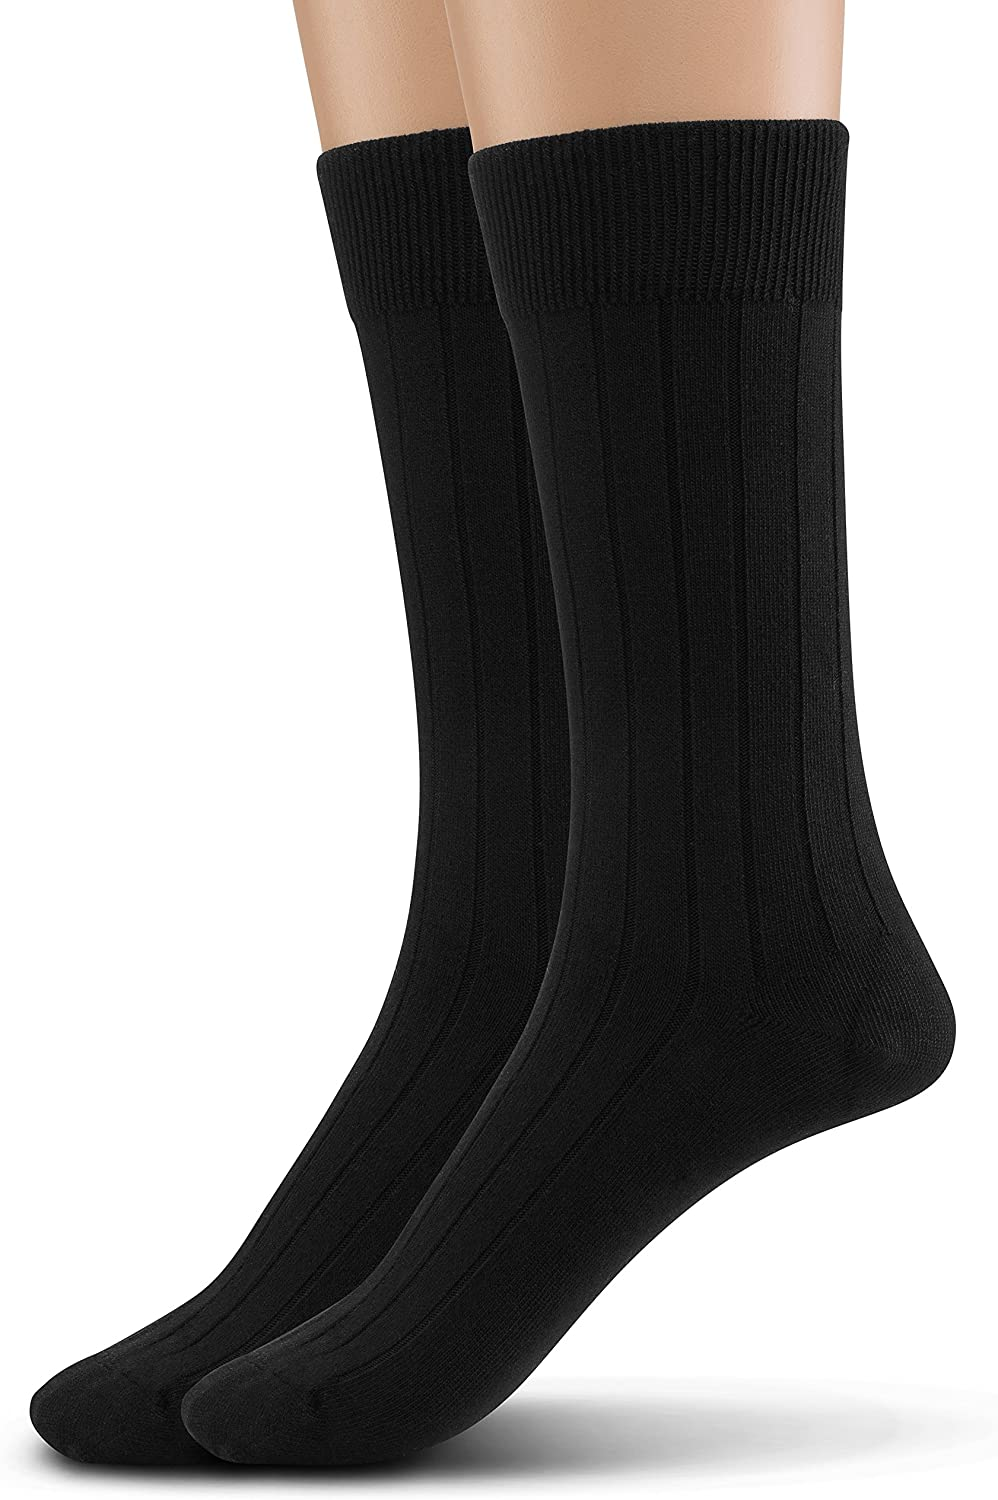 Silky Toes Modal Men's Dress Crew Socks, Solid and Designed Super Soft Socks Multi Pack